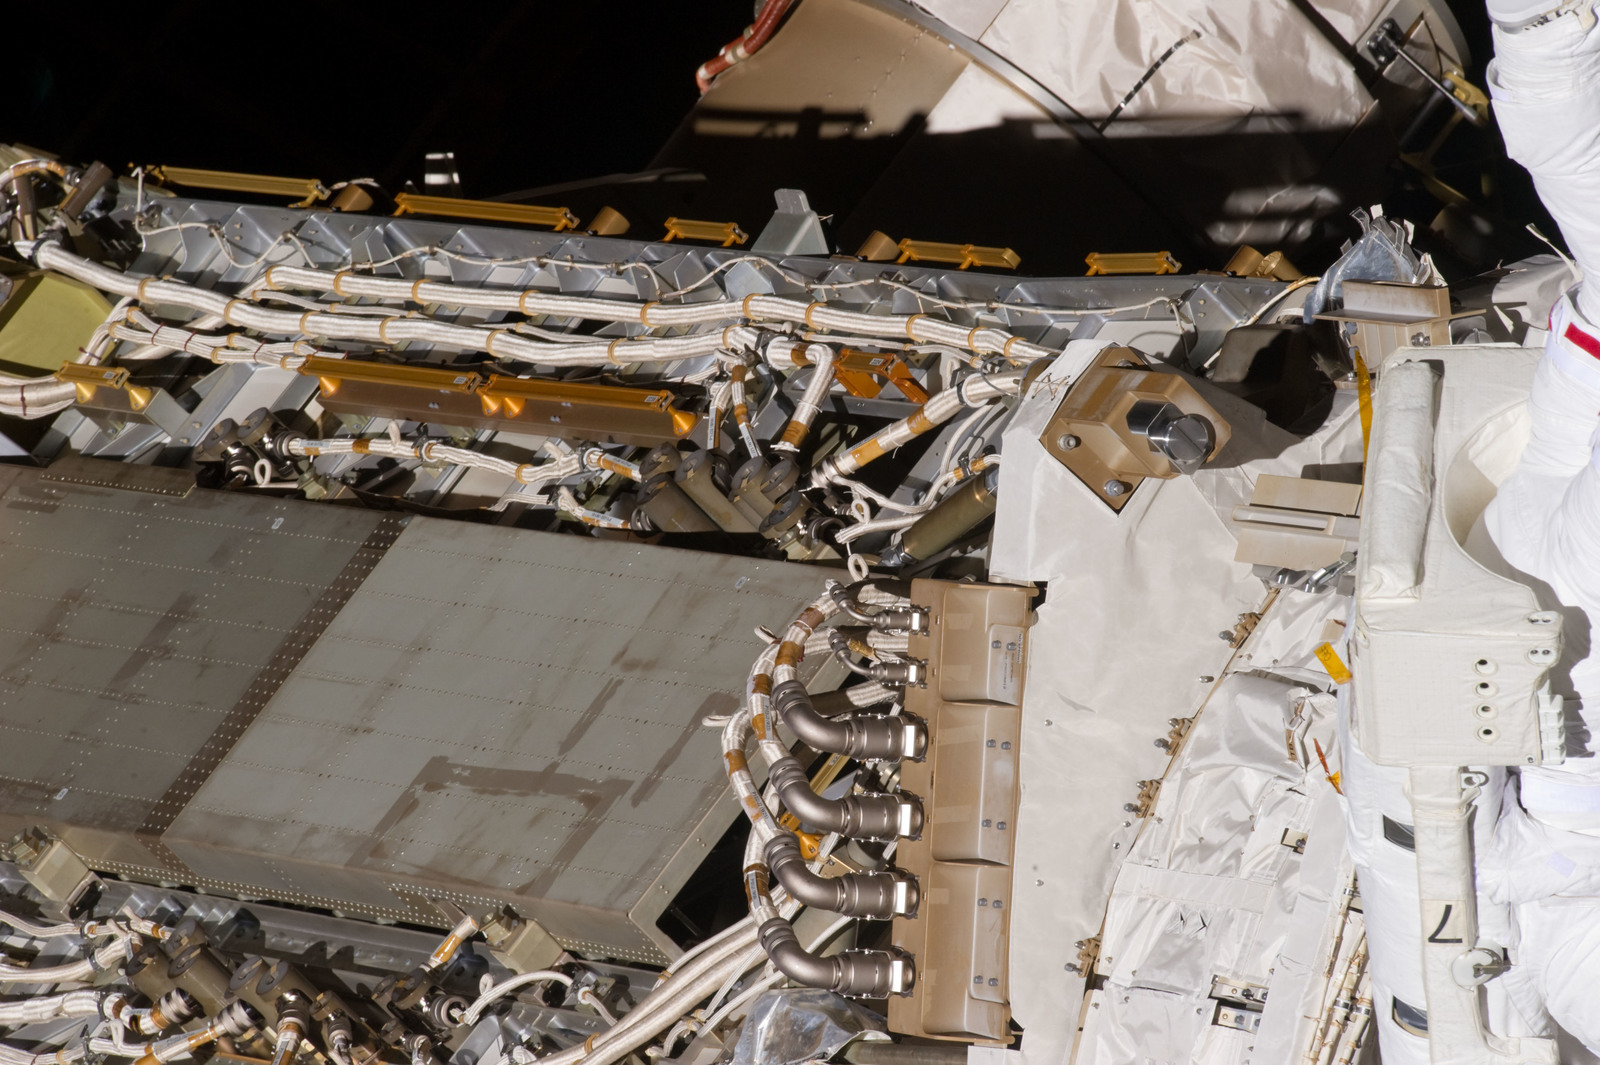 S134E007638 - STS-134 - View of STS-134 MS Chamitoff during EVA-1